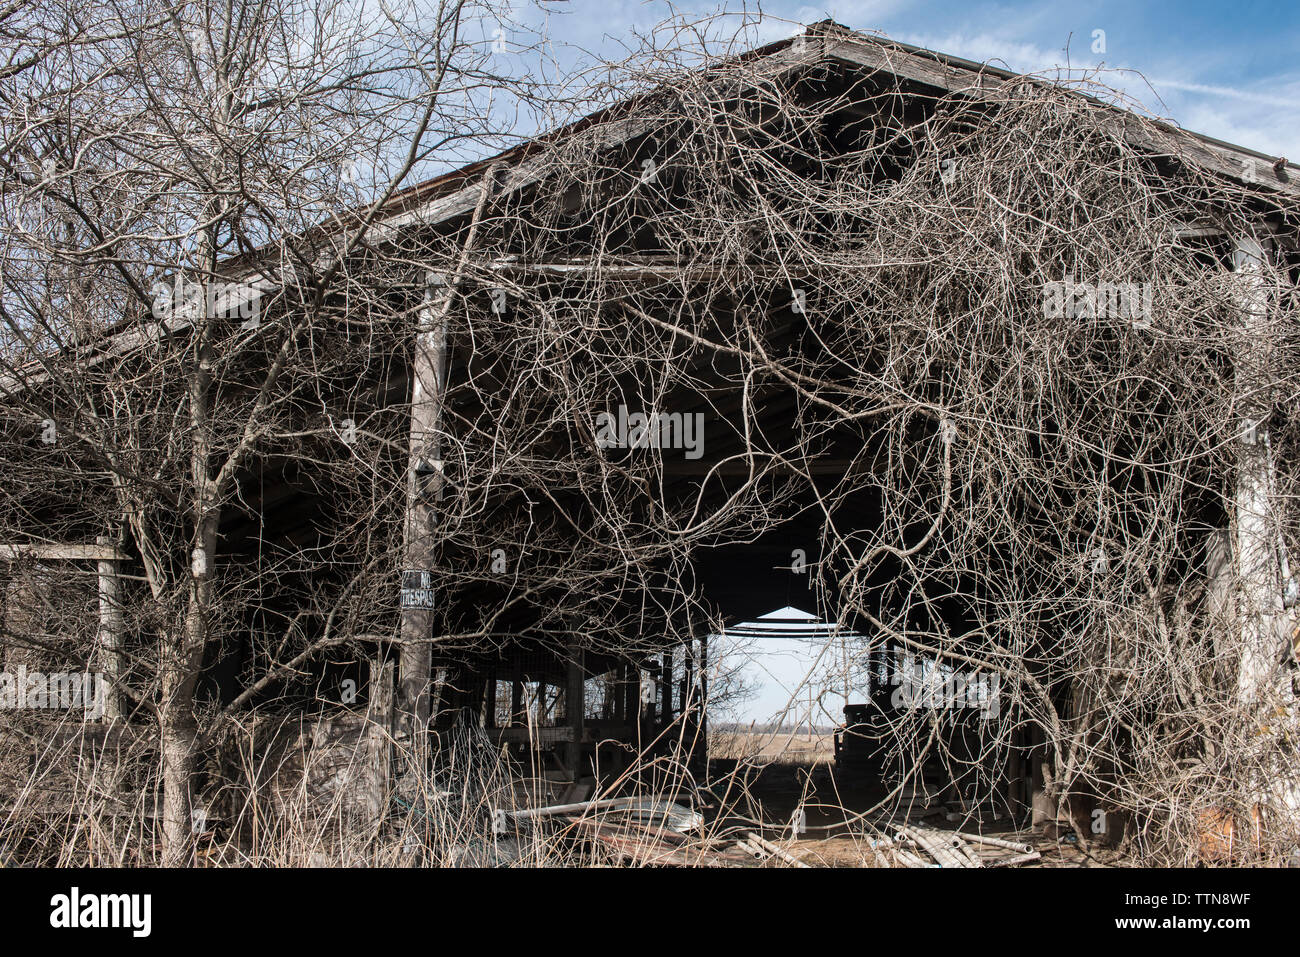 Abandoned wooden barn at farm by bare trees and dead plants - Stock Image